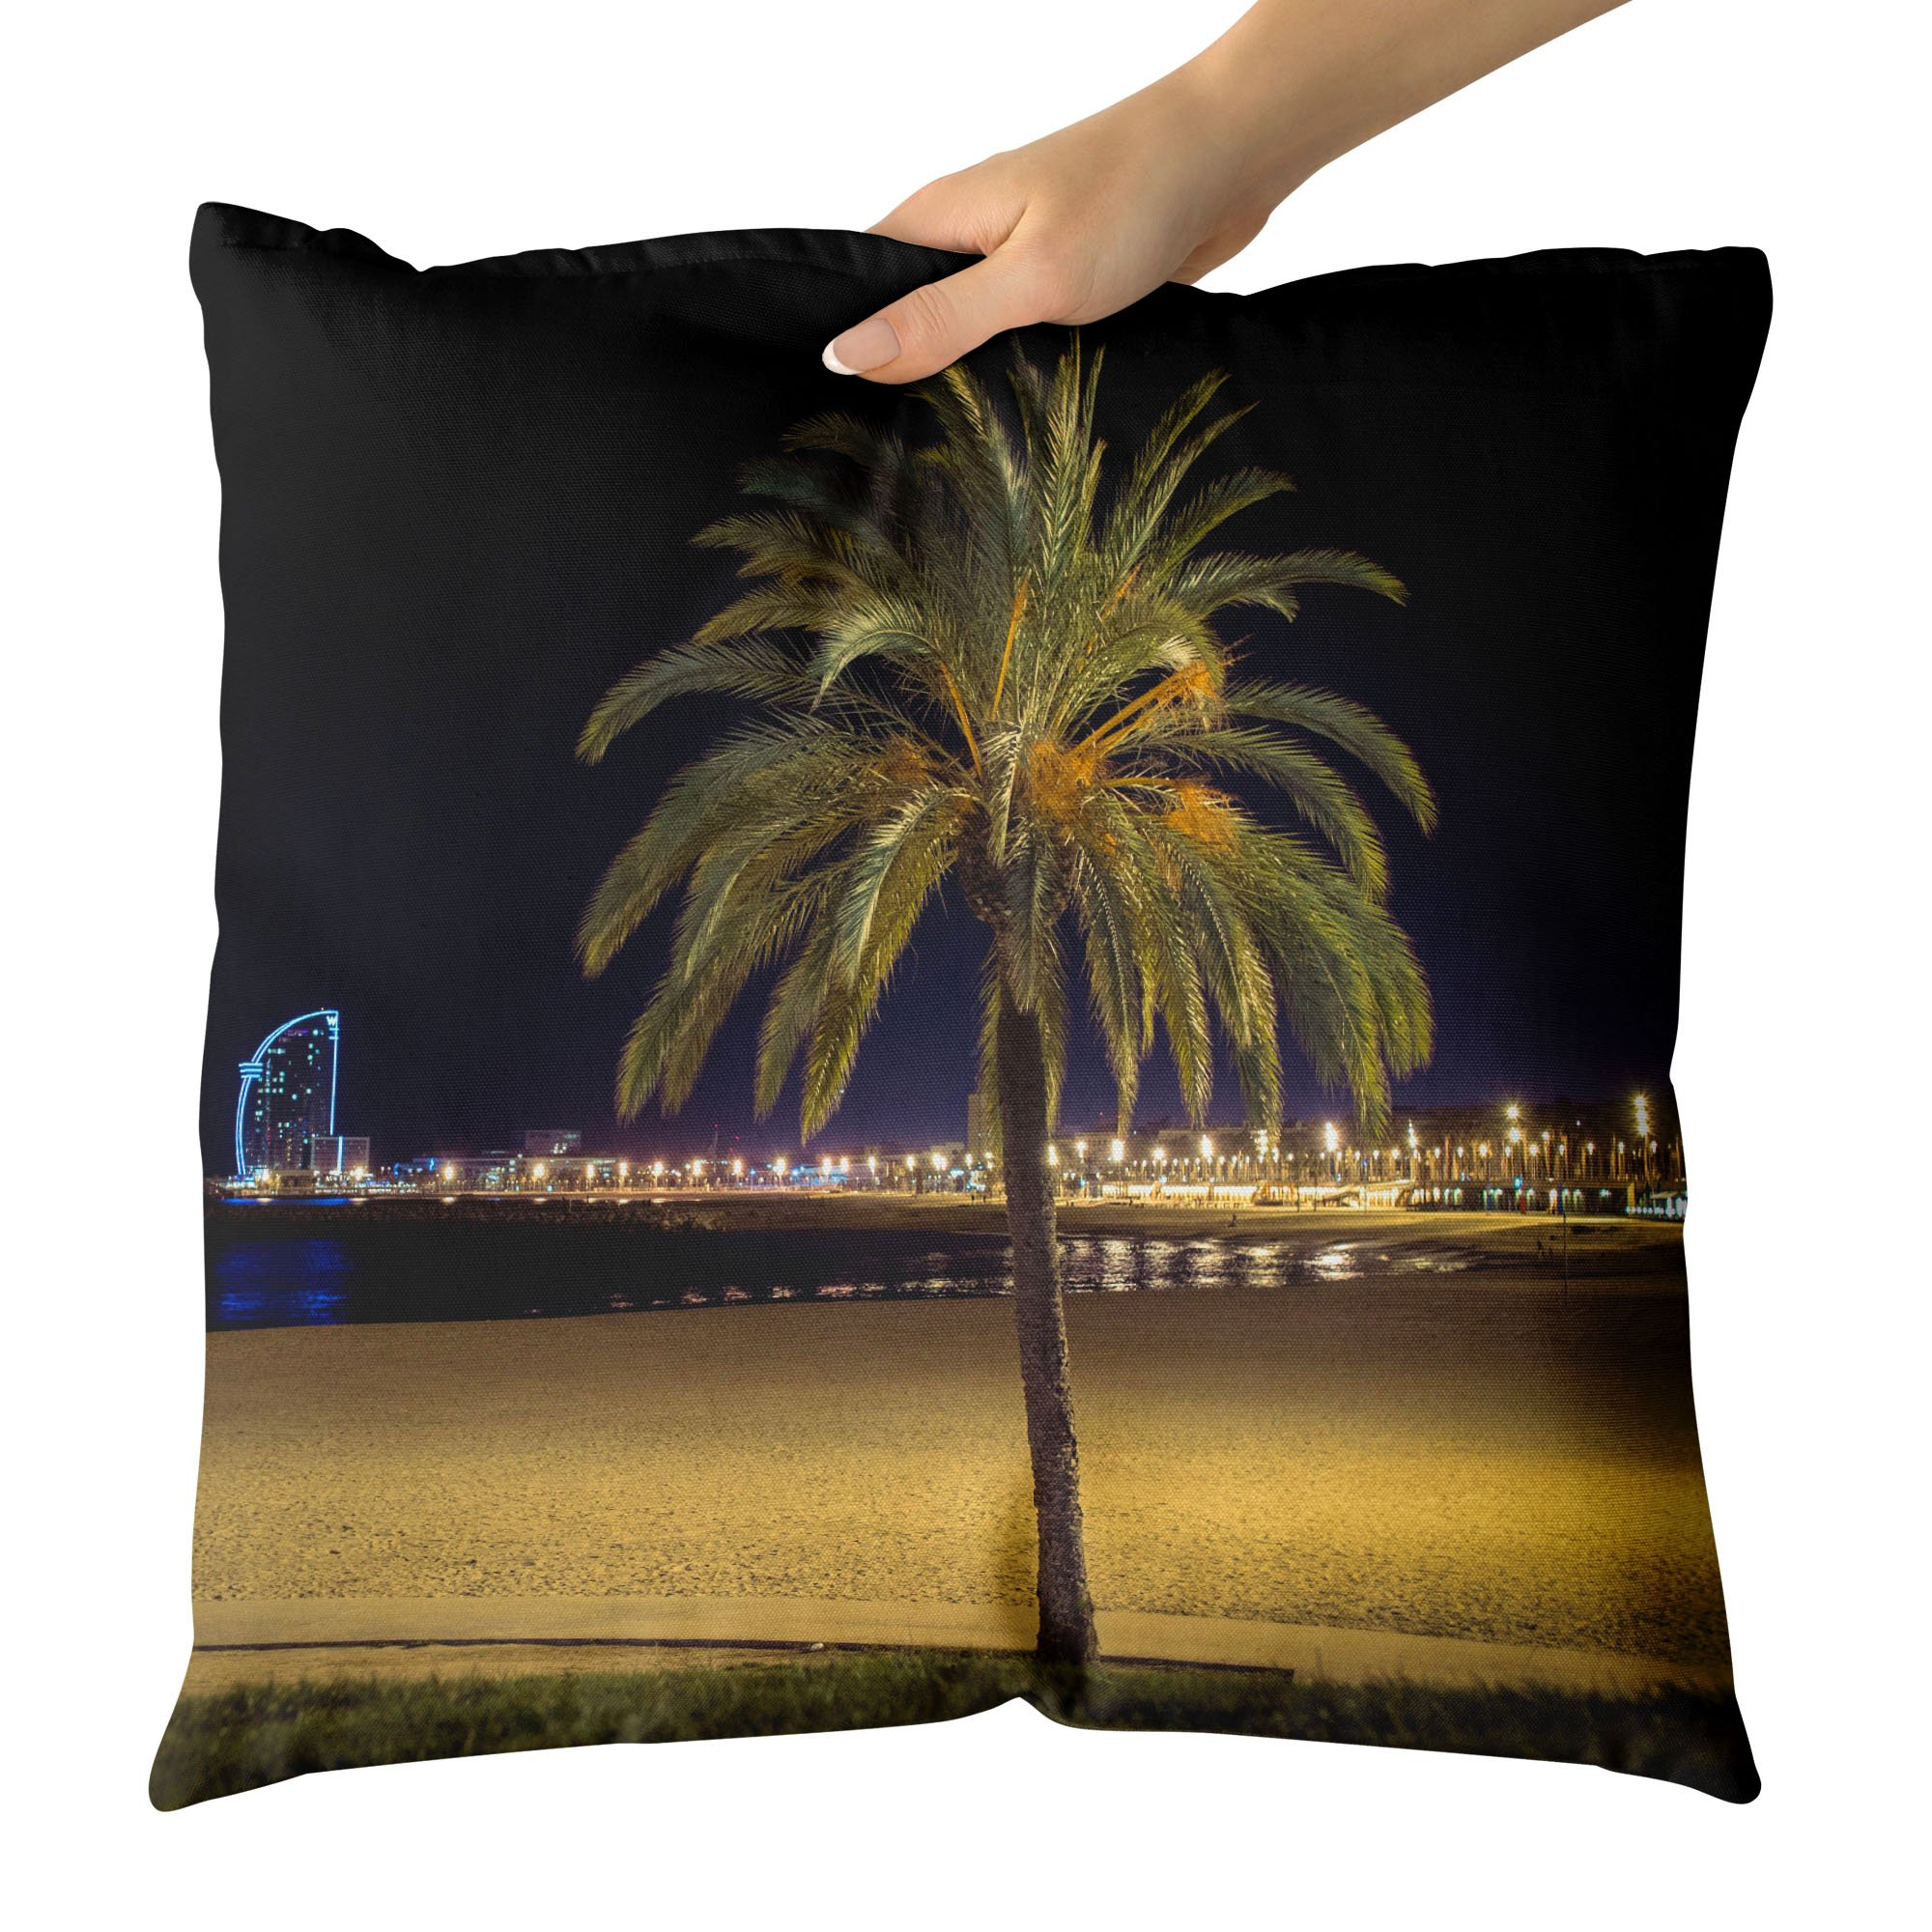 Westlake Art - Tree Hotel - Decorative Throw Pillow Cushion - Picture Photography Artwork Home Decor Living Room - 18x18 Inch (FEB50)